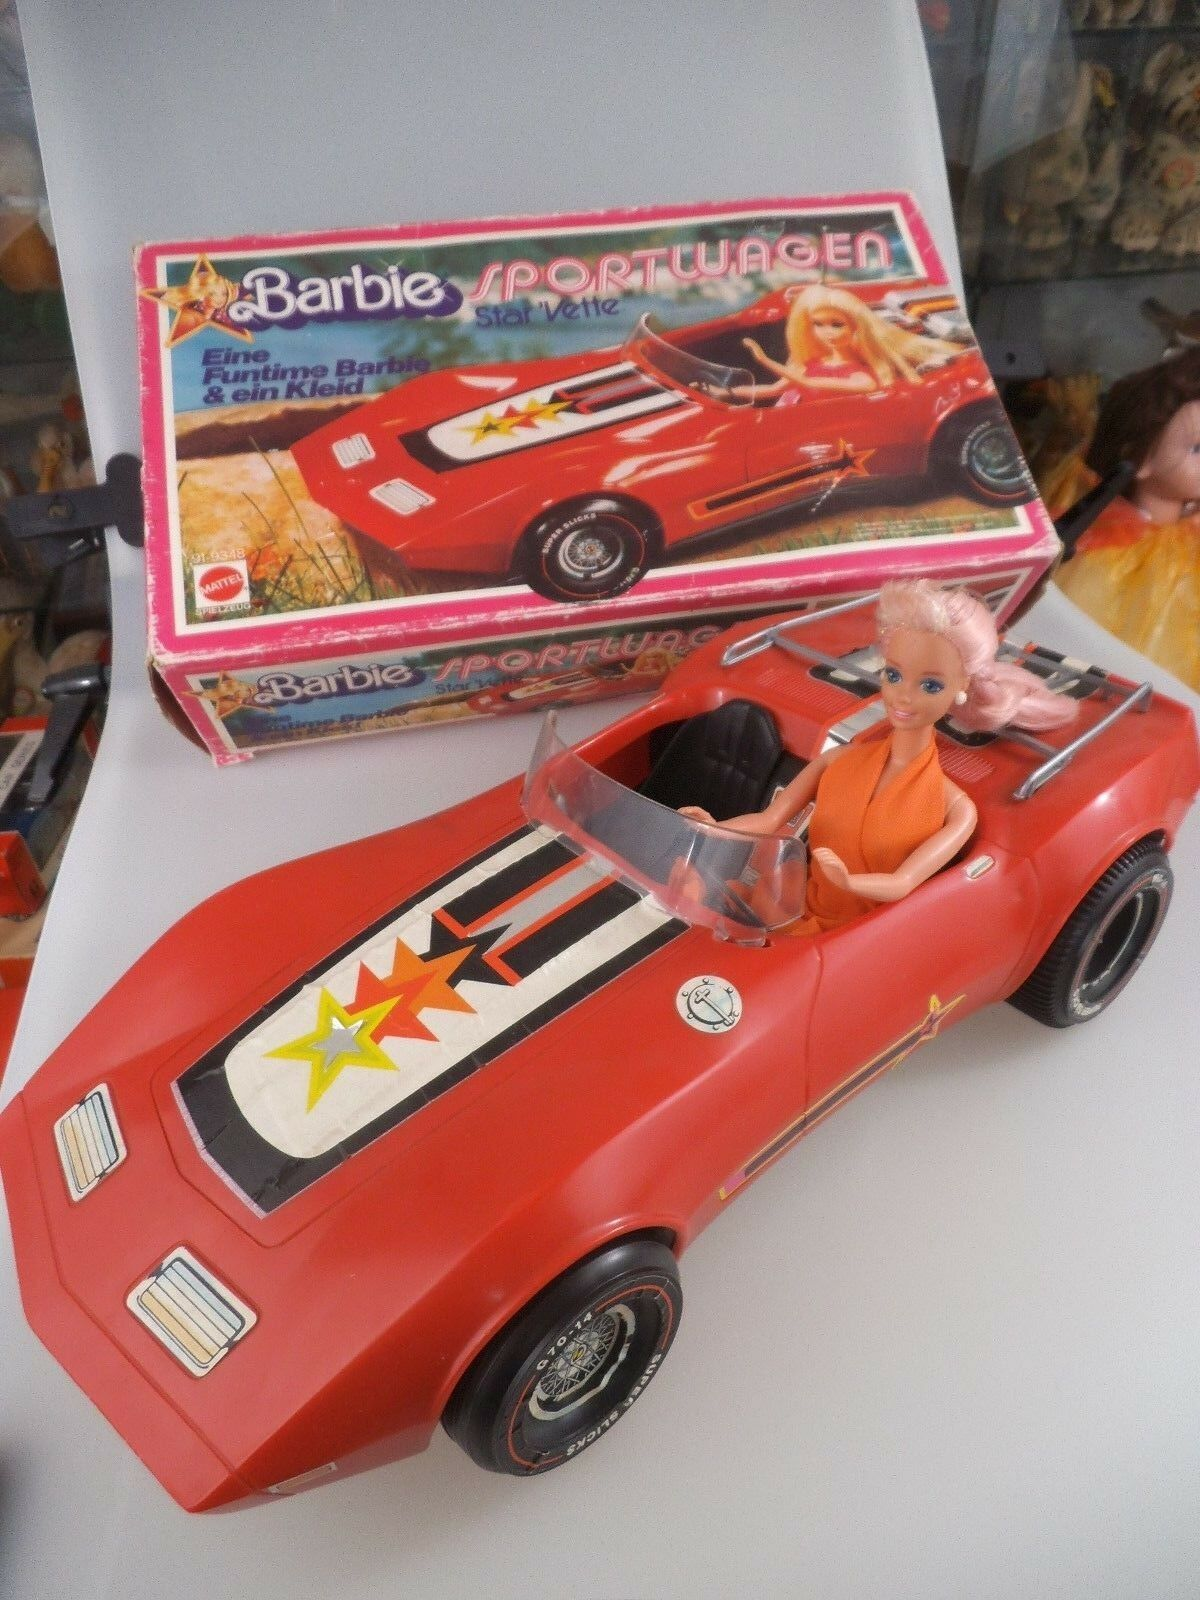 BARBIE Auto Sportiva Star 'vette in scatola originale del 1978  2293